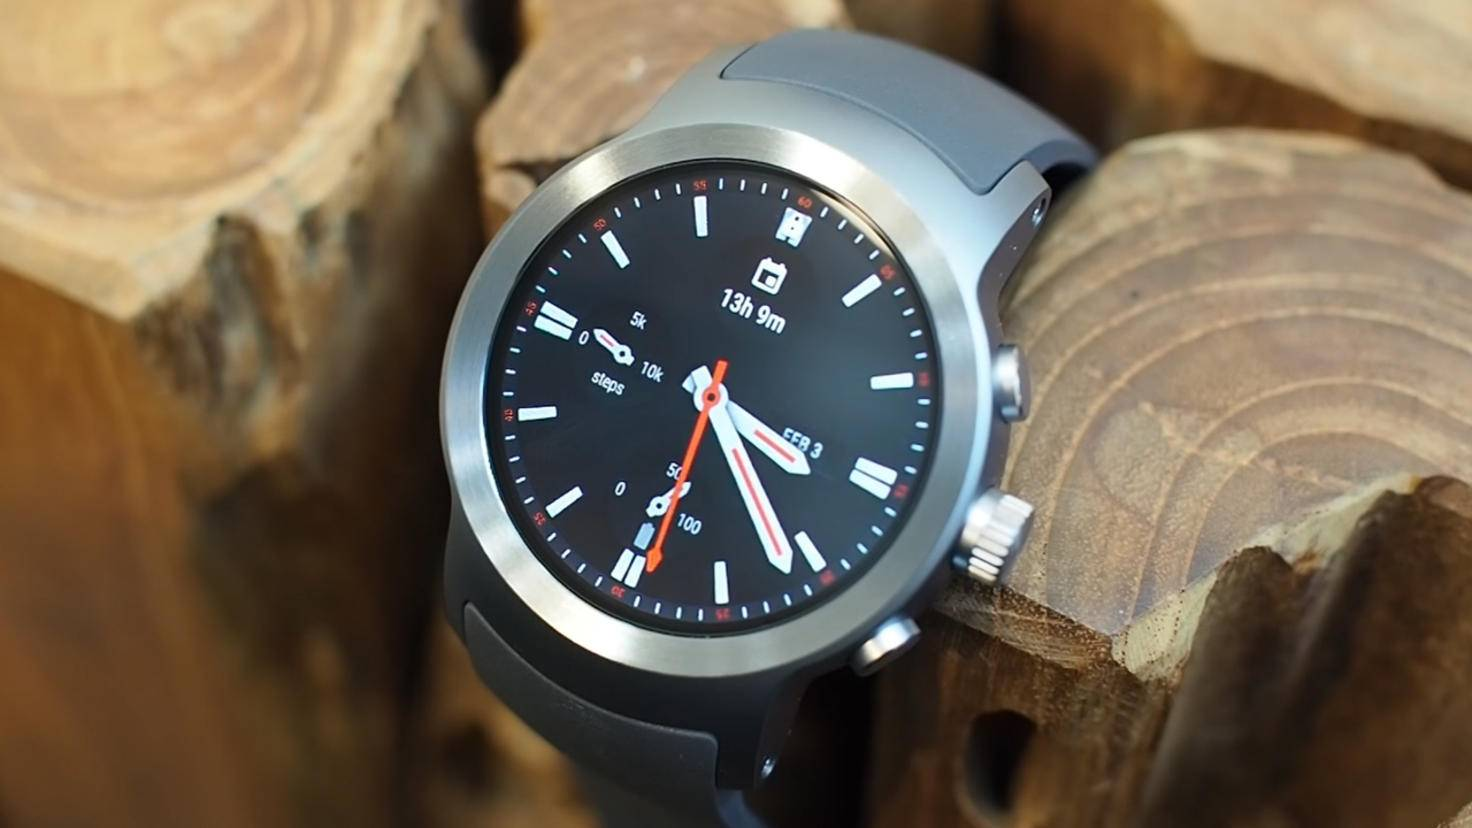 LG Watch Sport Android Wear 2.0 3